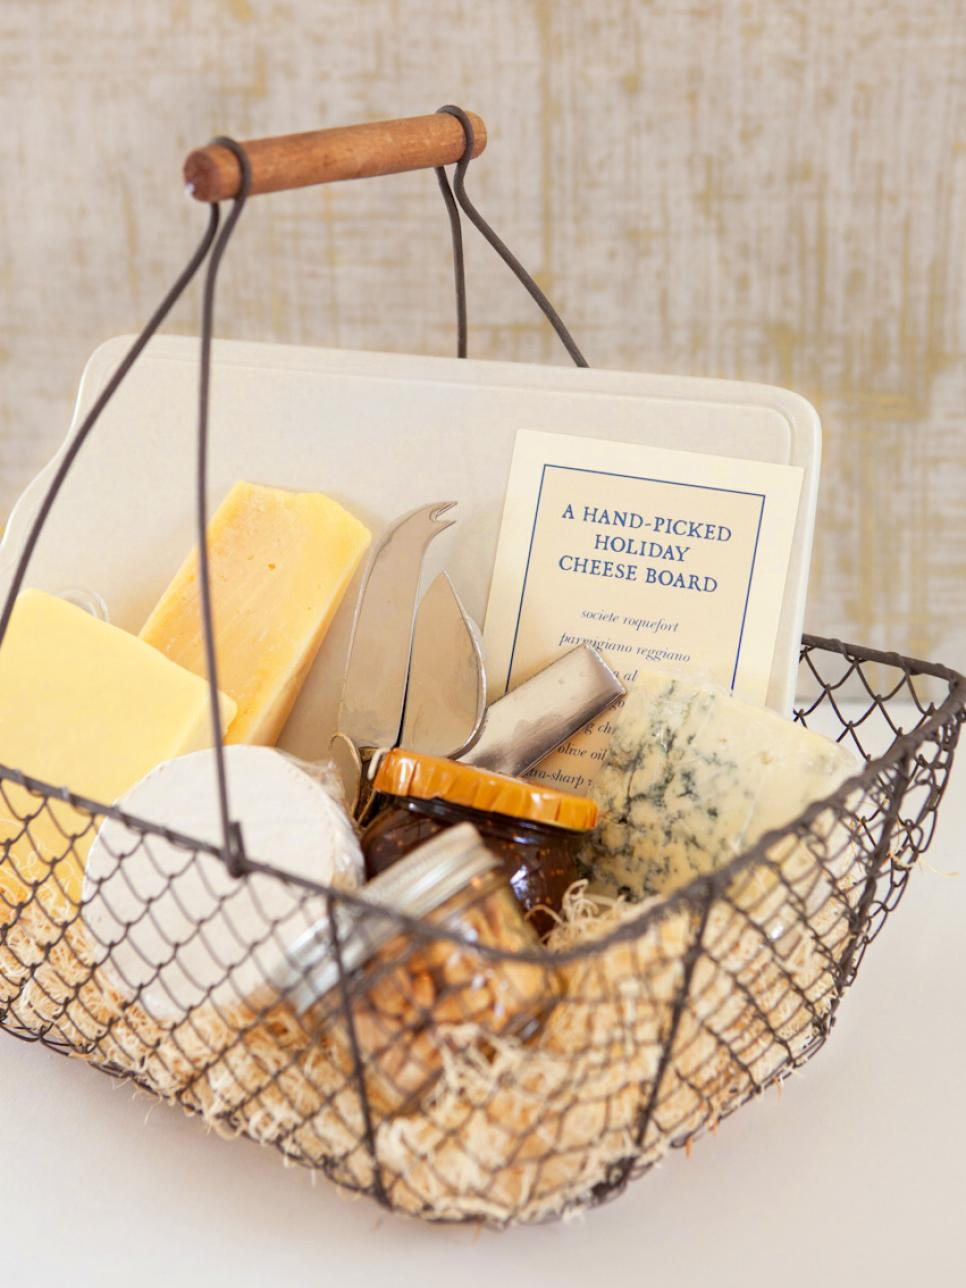 ci-camille-styles_food-basket-cheese1_3x4-jpg-rend-hgtvcom-966-1288